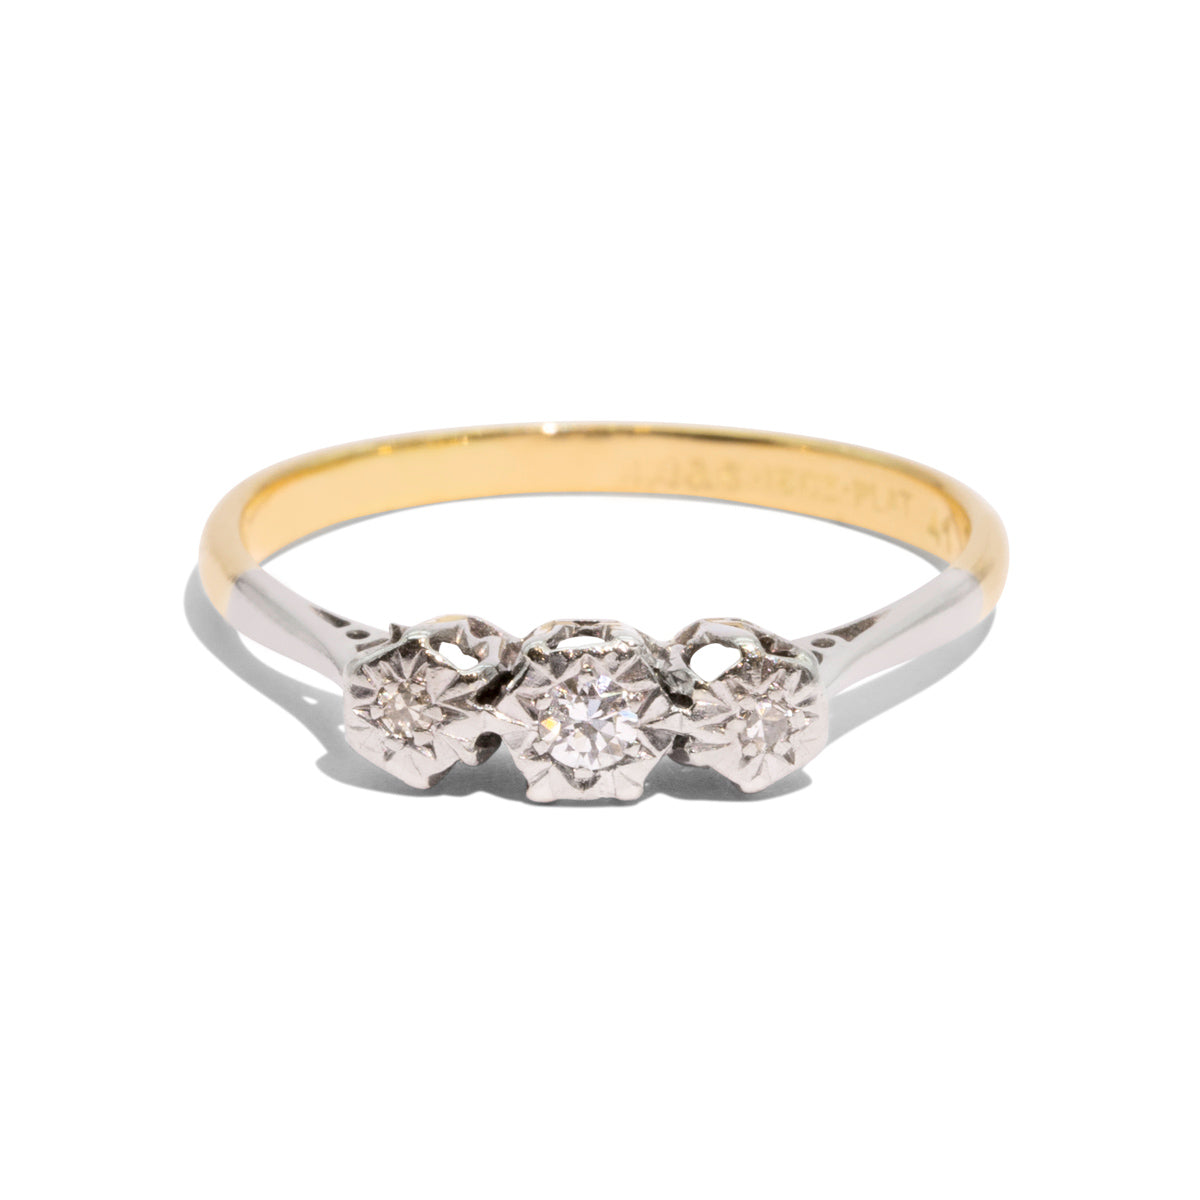 The Maxine Vintage Diamond Ring